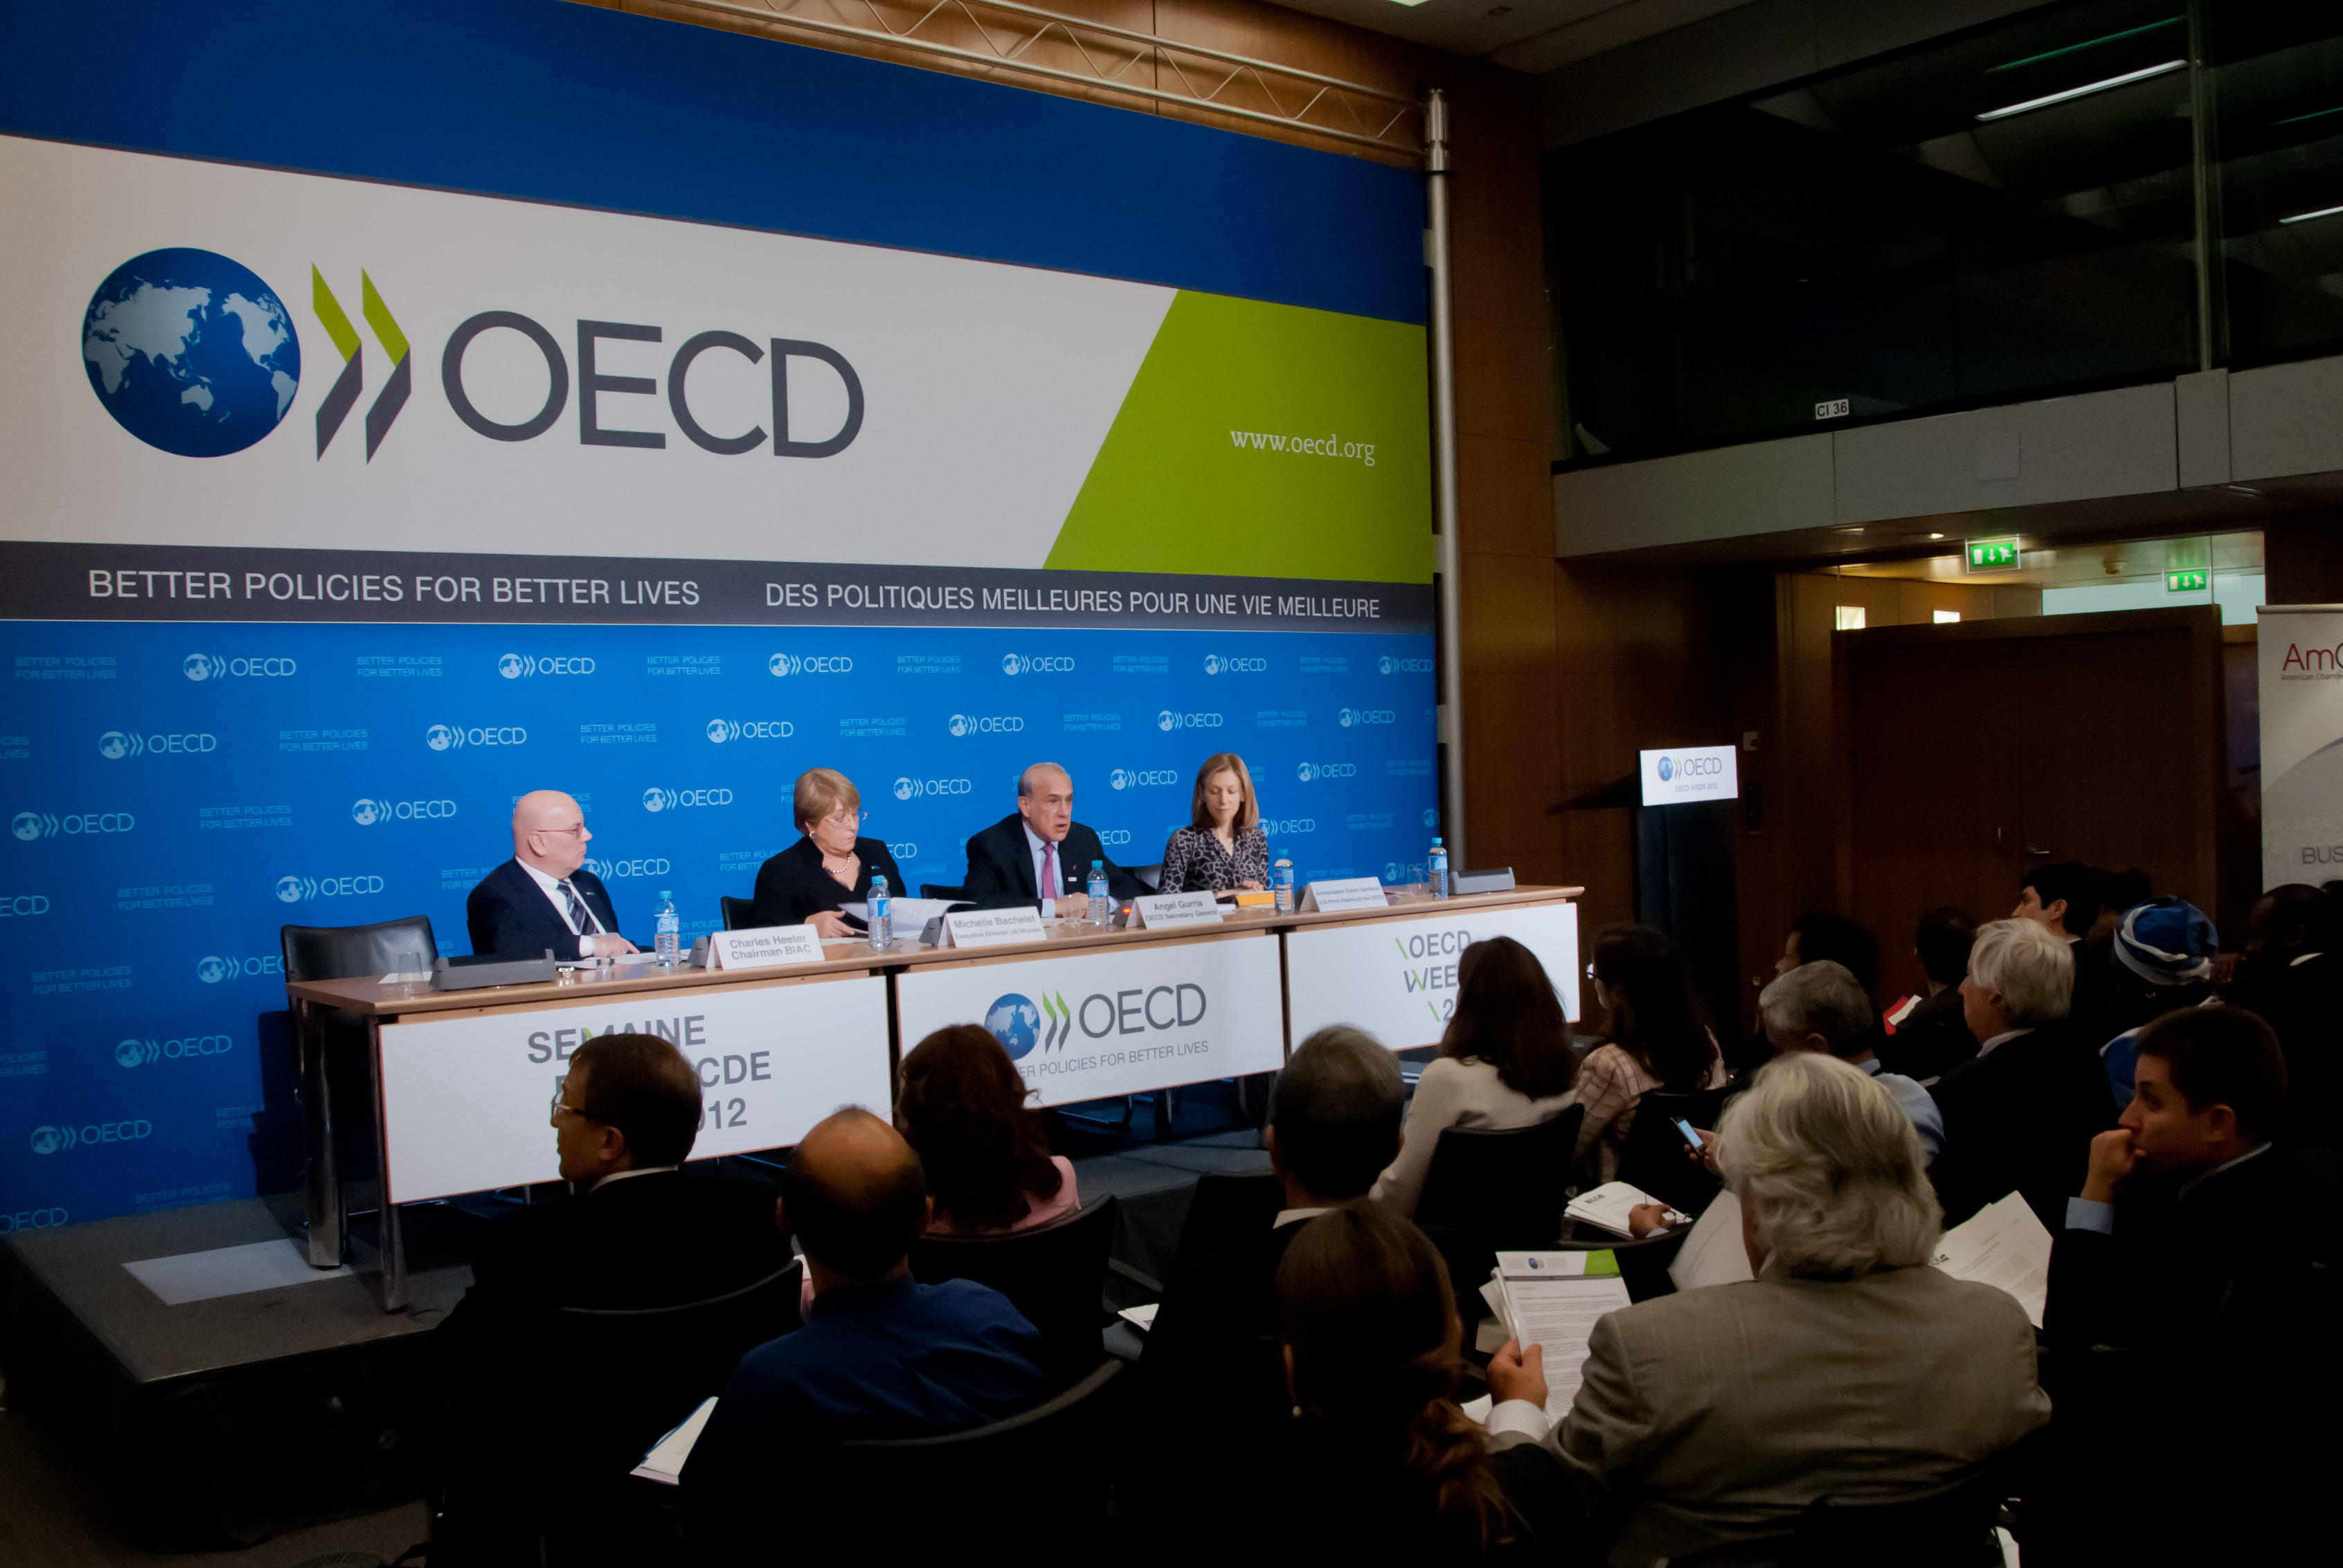 OECD-MAY-22-2012